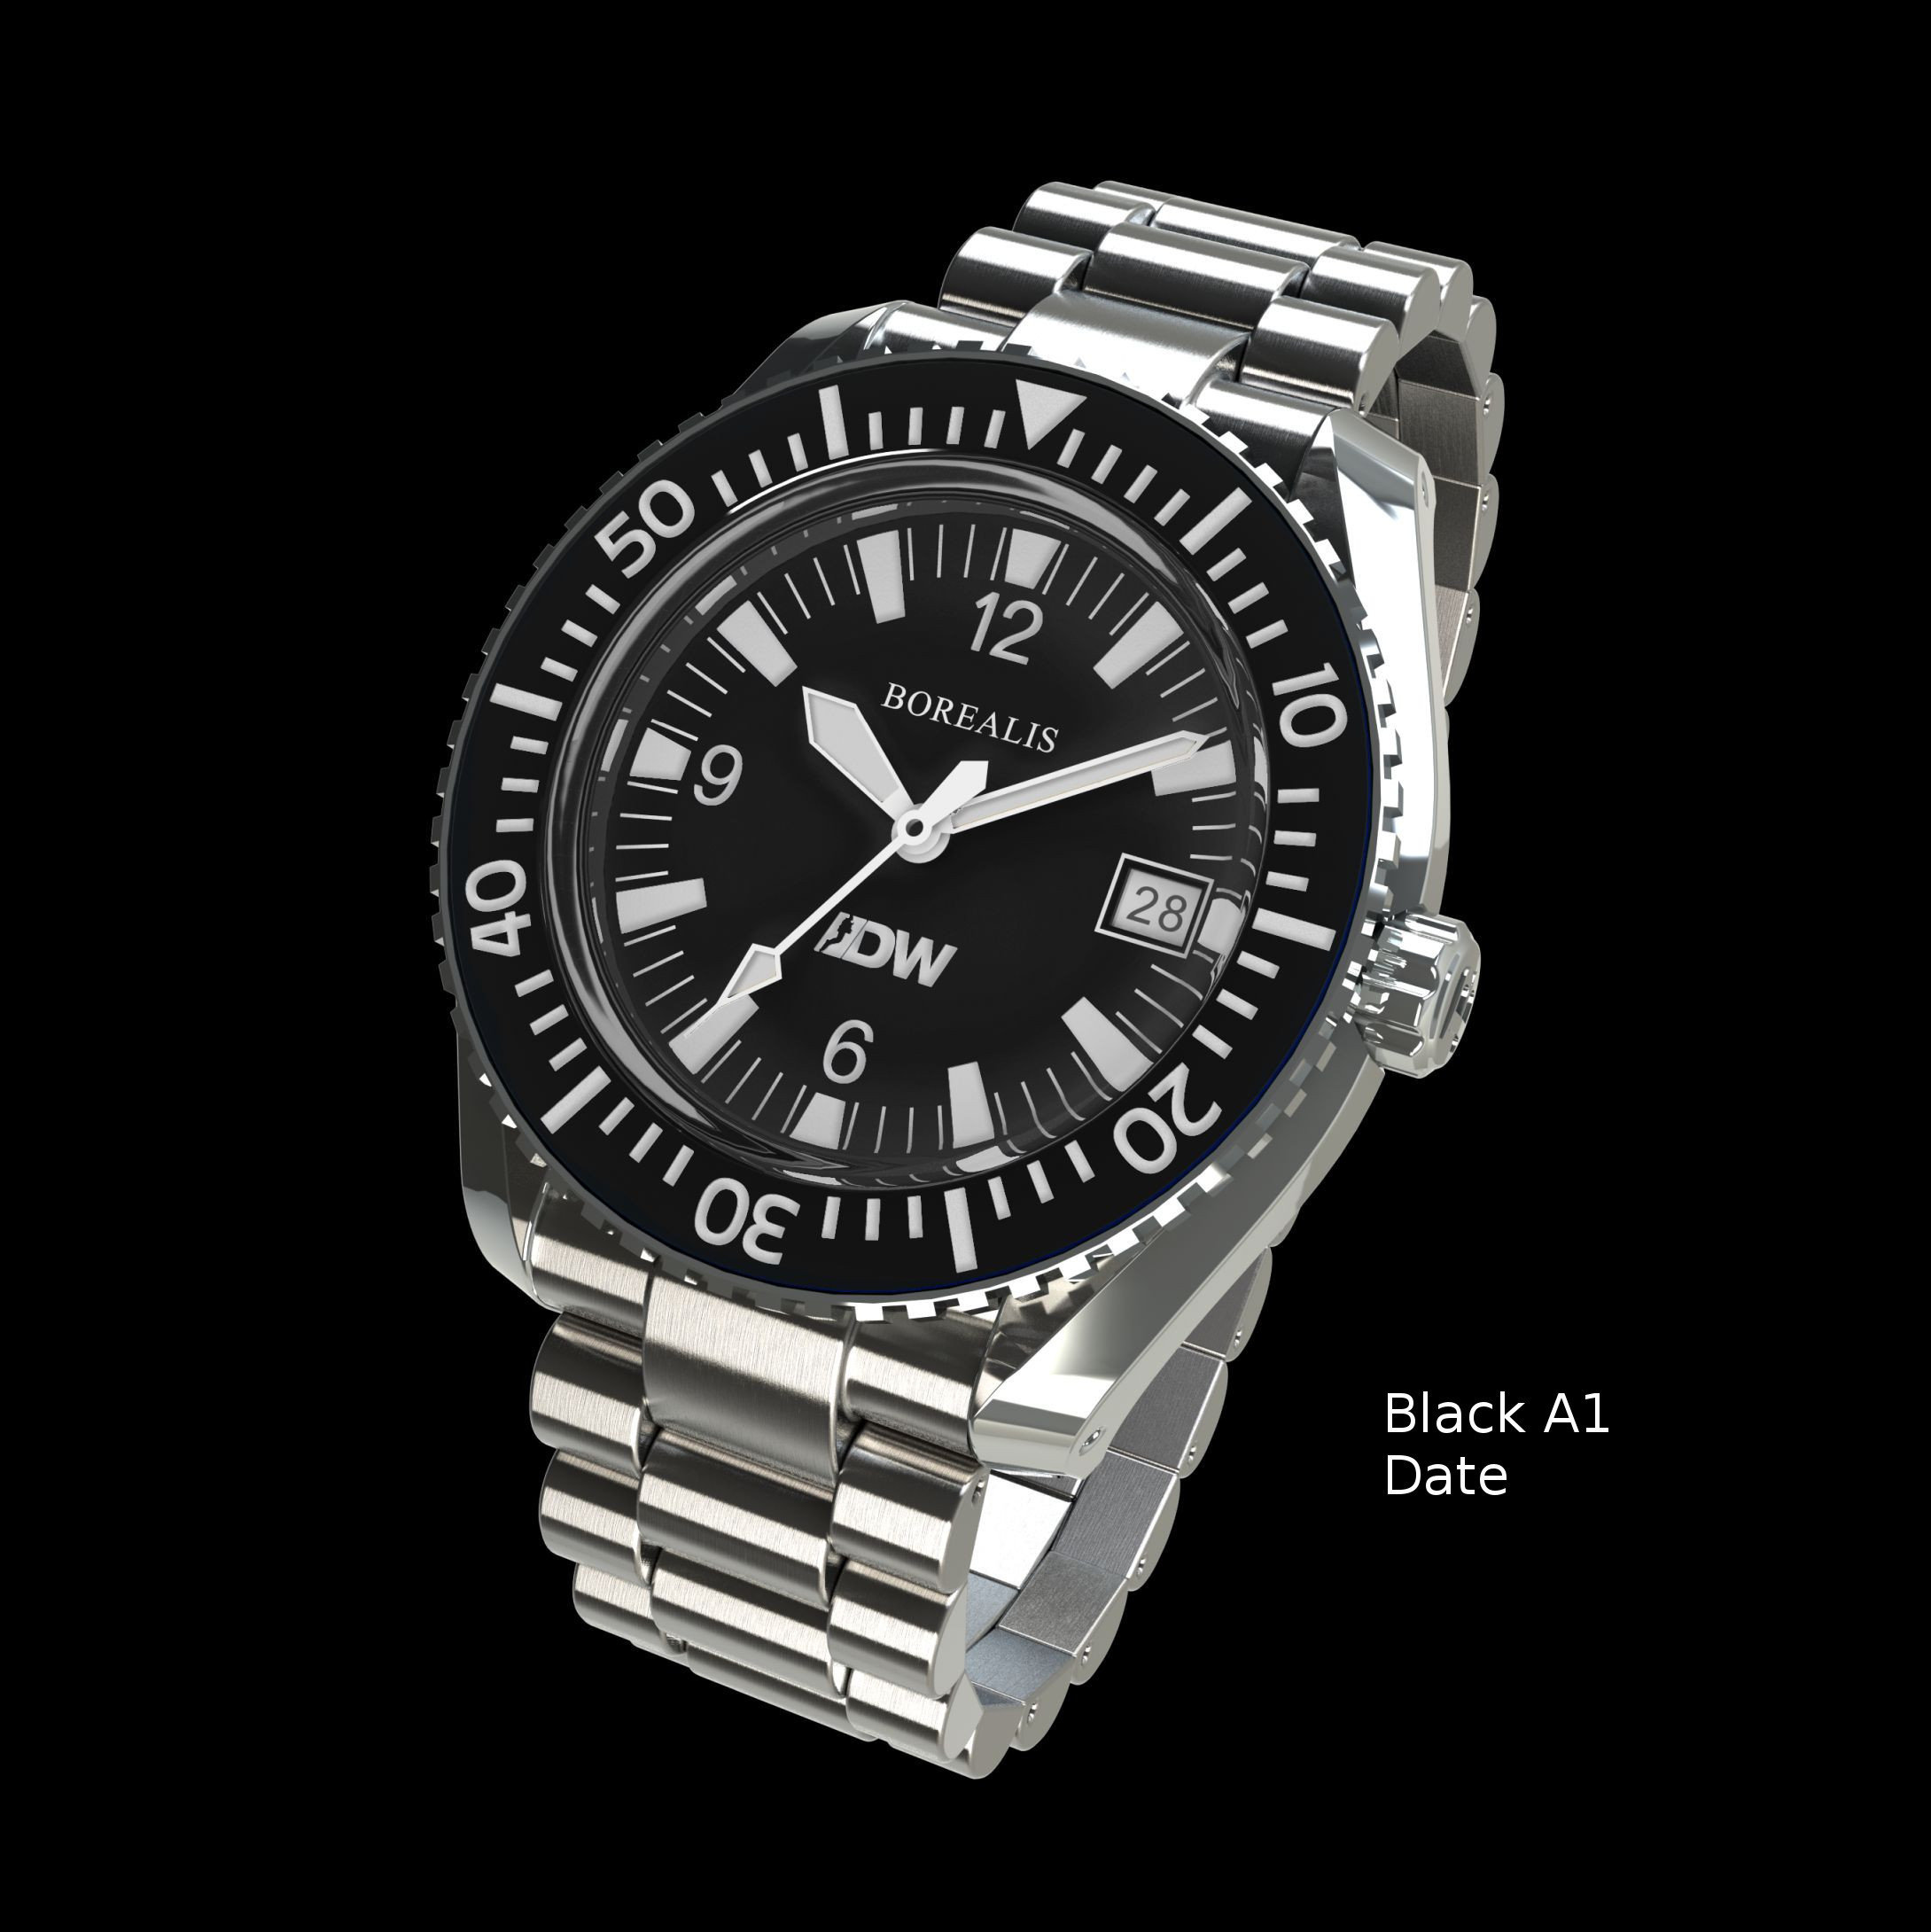 Borealis Estoril 300 for Diver's Watches Facebook Group Black Dial Arabic Numbers Date Black A1 Date